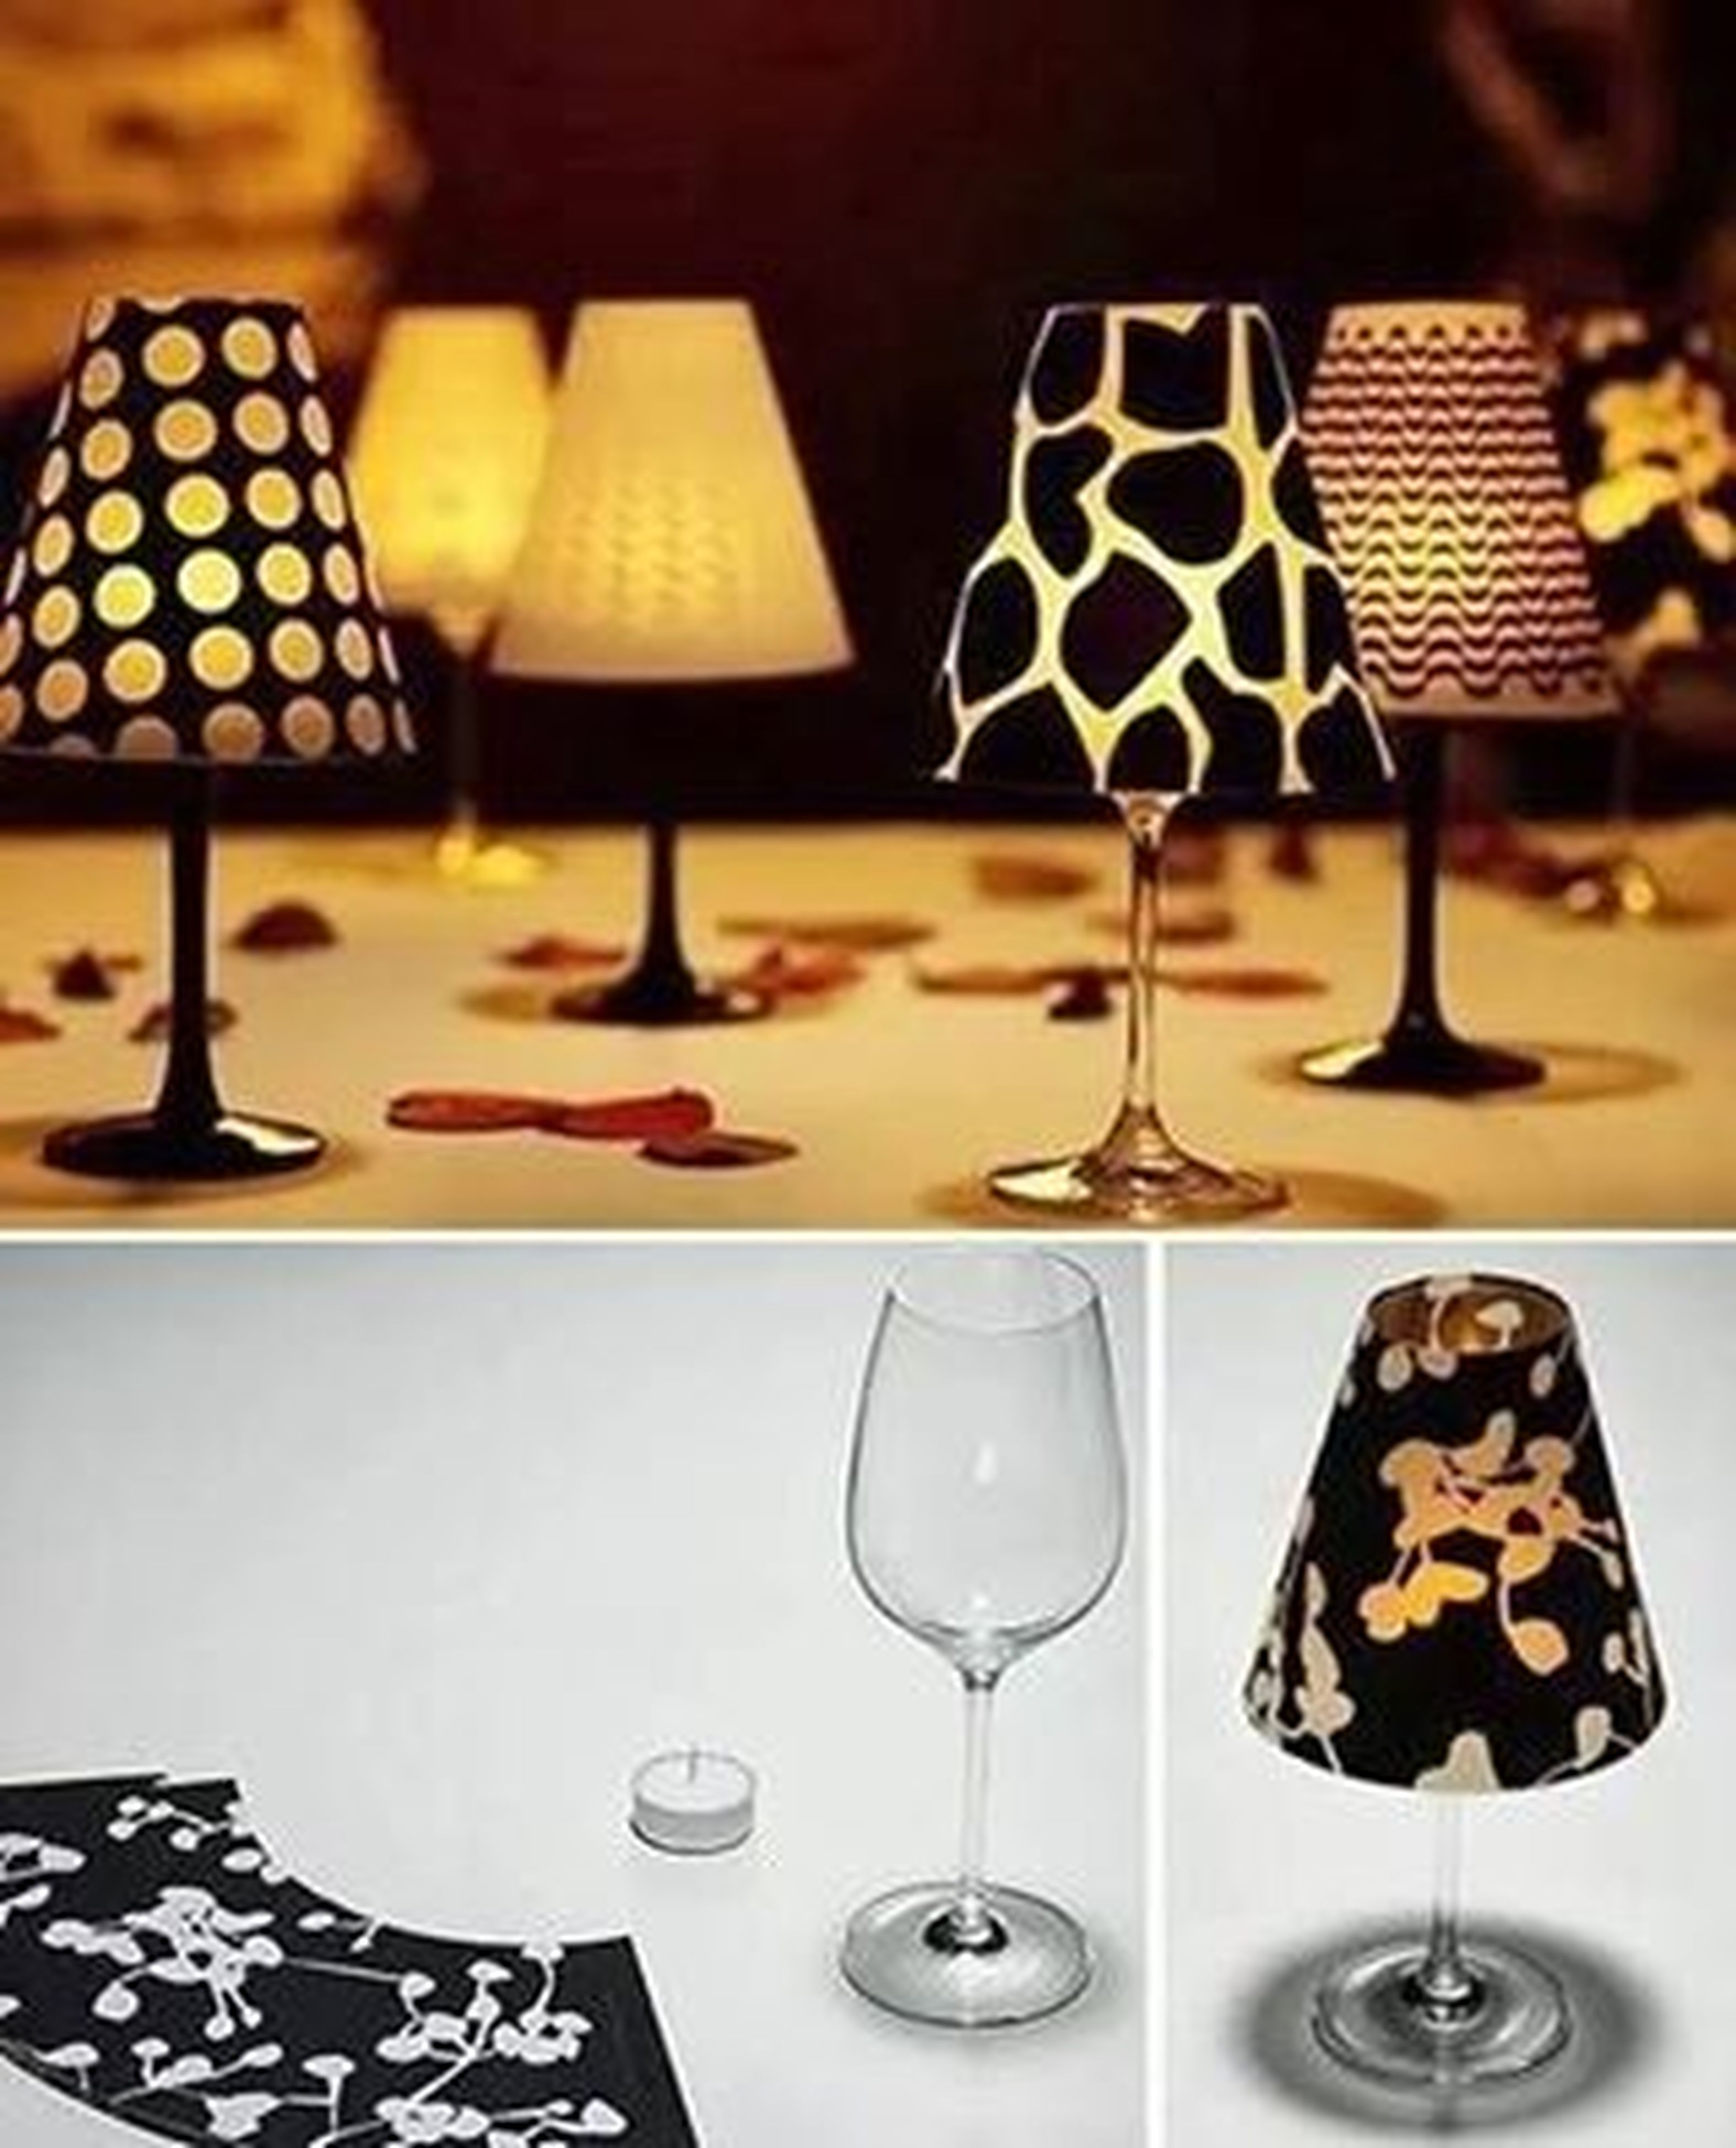 indoors, table, still life, close-up, decoration, focus on foreground, home interior, no people, candle, lighting equipment, hanging, decor, arrangement, illuminated, electric lamp, design, absence, pattern, chair, glass - material